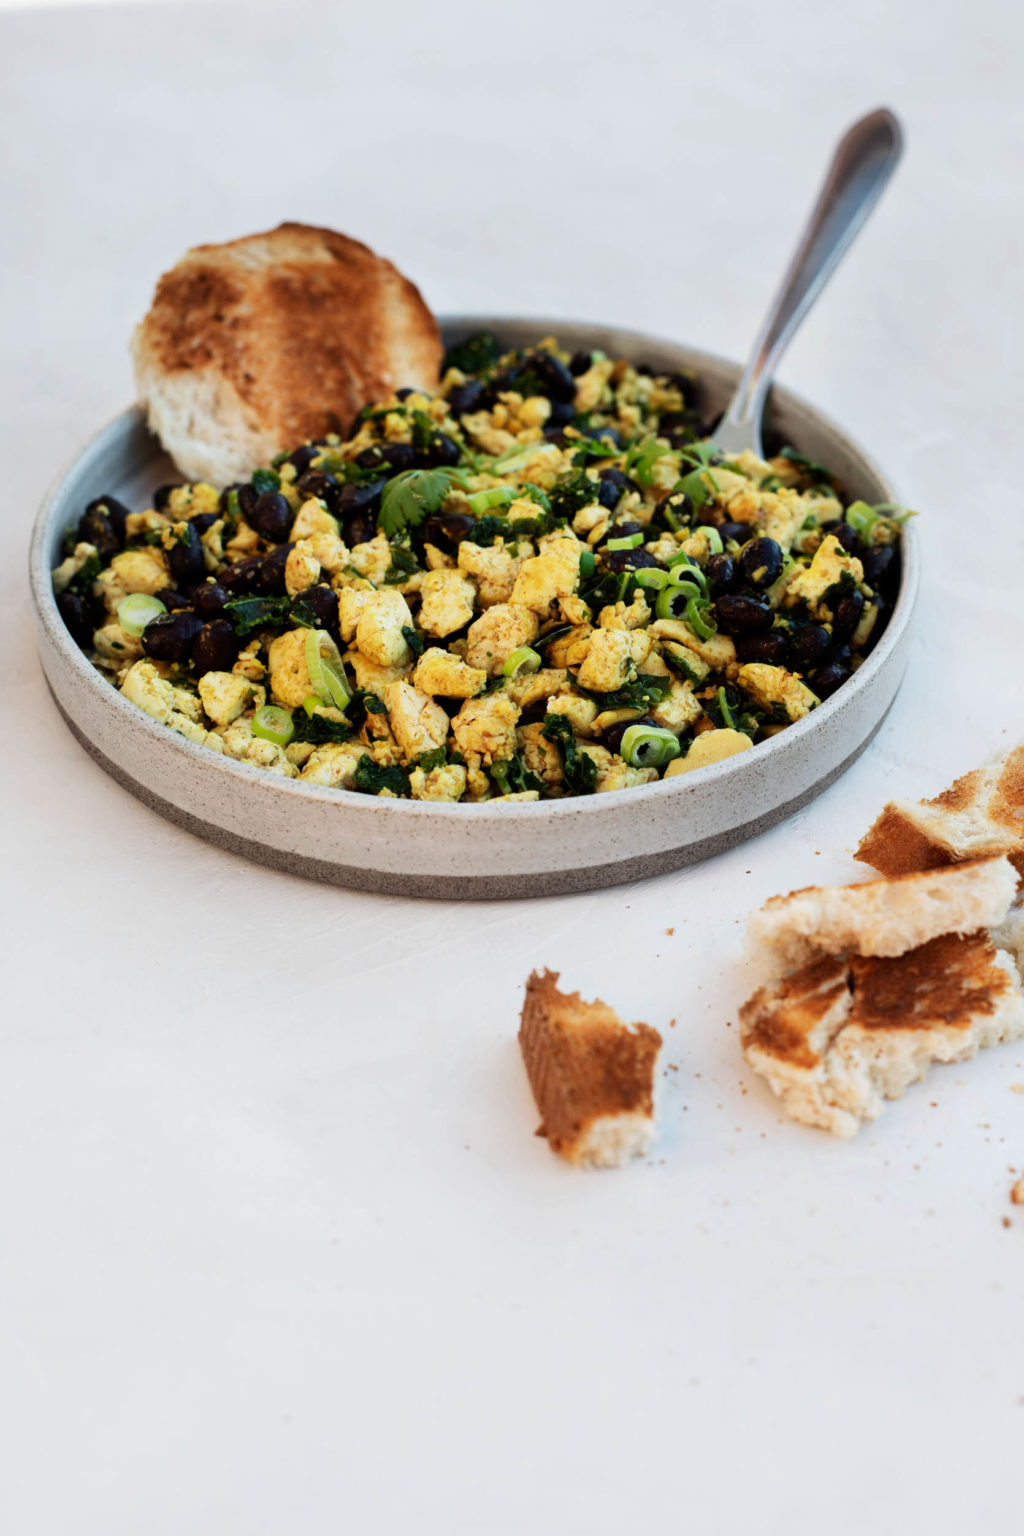 An angled photograph of a round plate, holding a vegan black bean tofu scramble with scallions and bread.